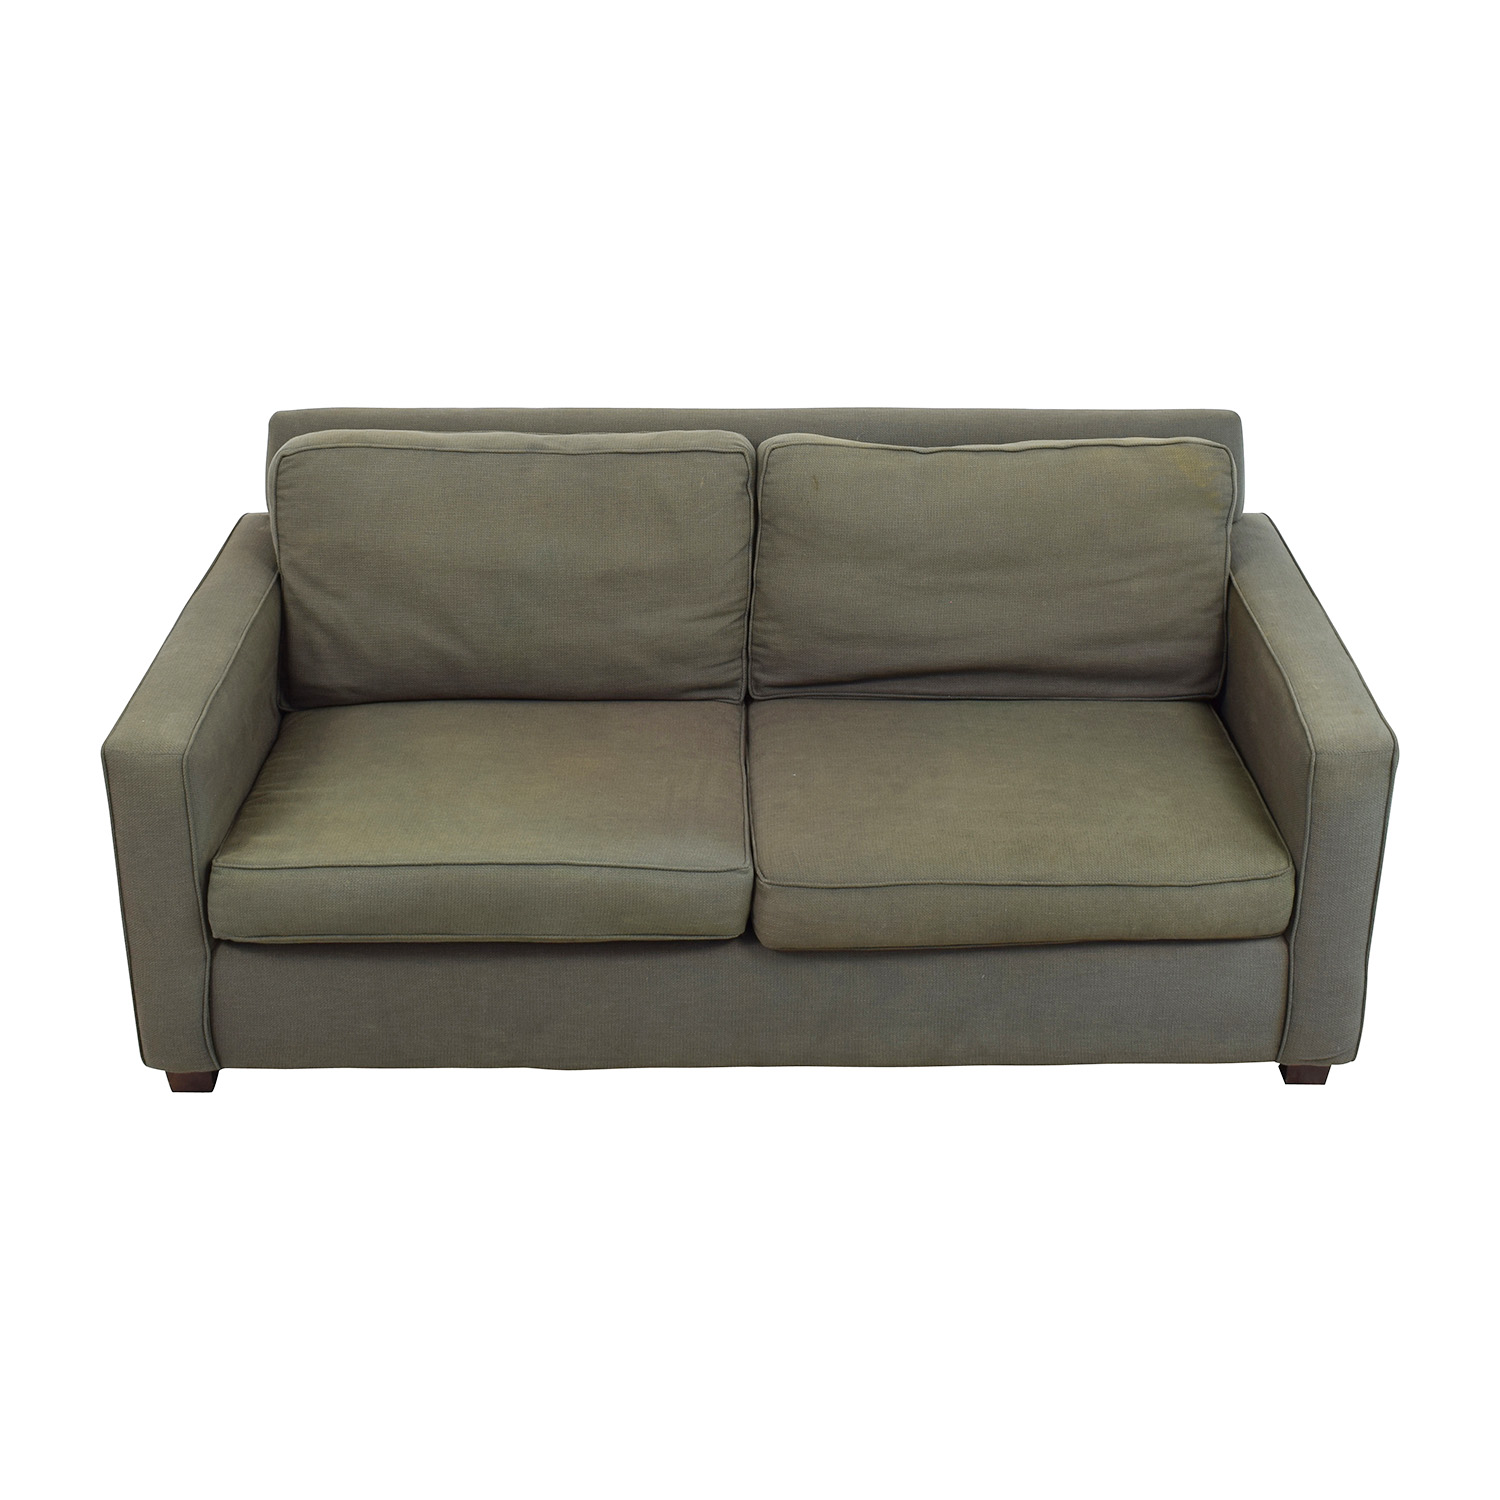 West Elm West Elm Henry Grey Fabric Sofa on sale